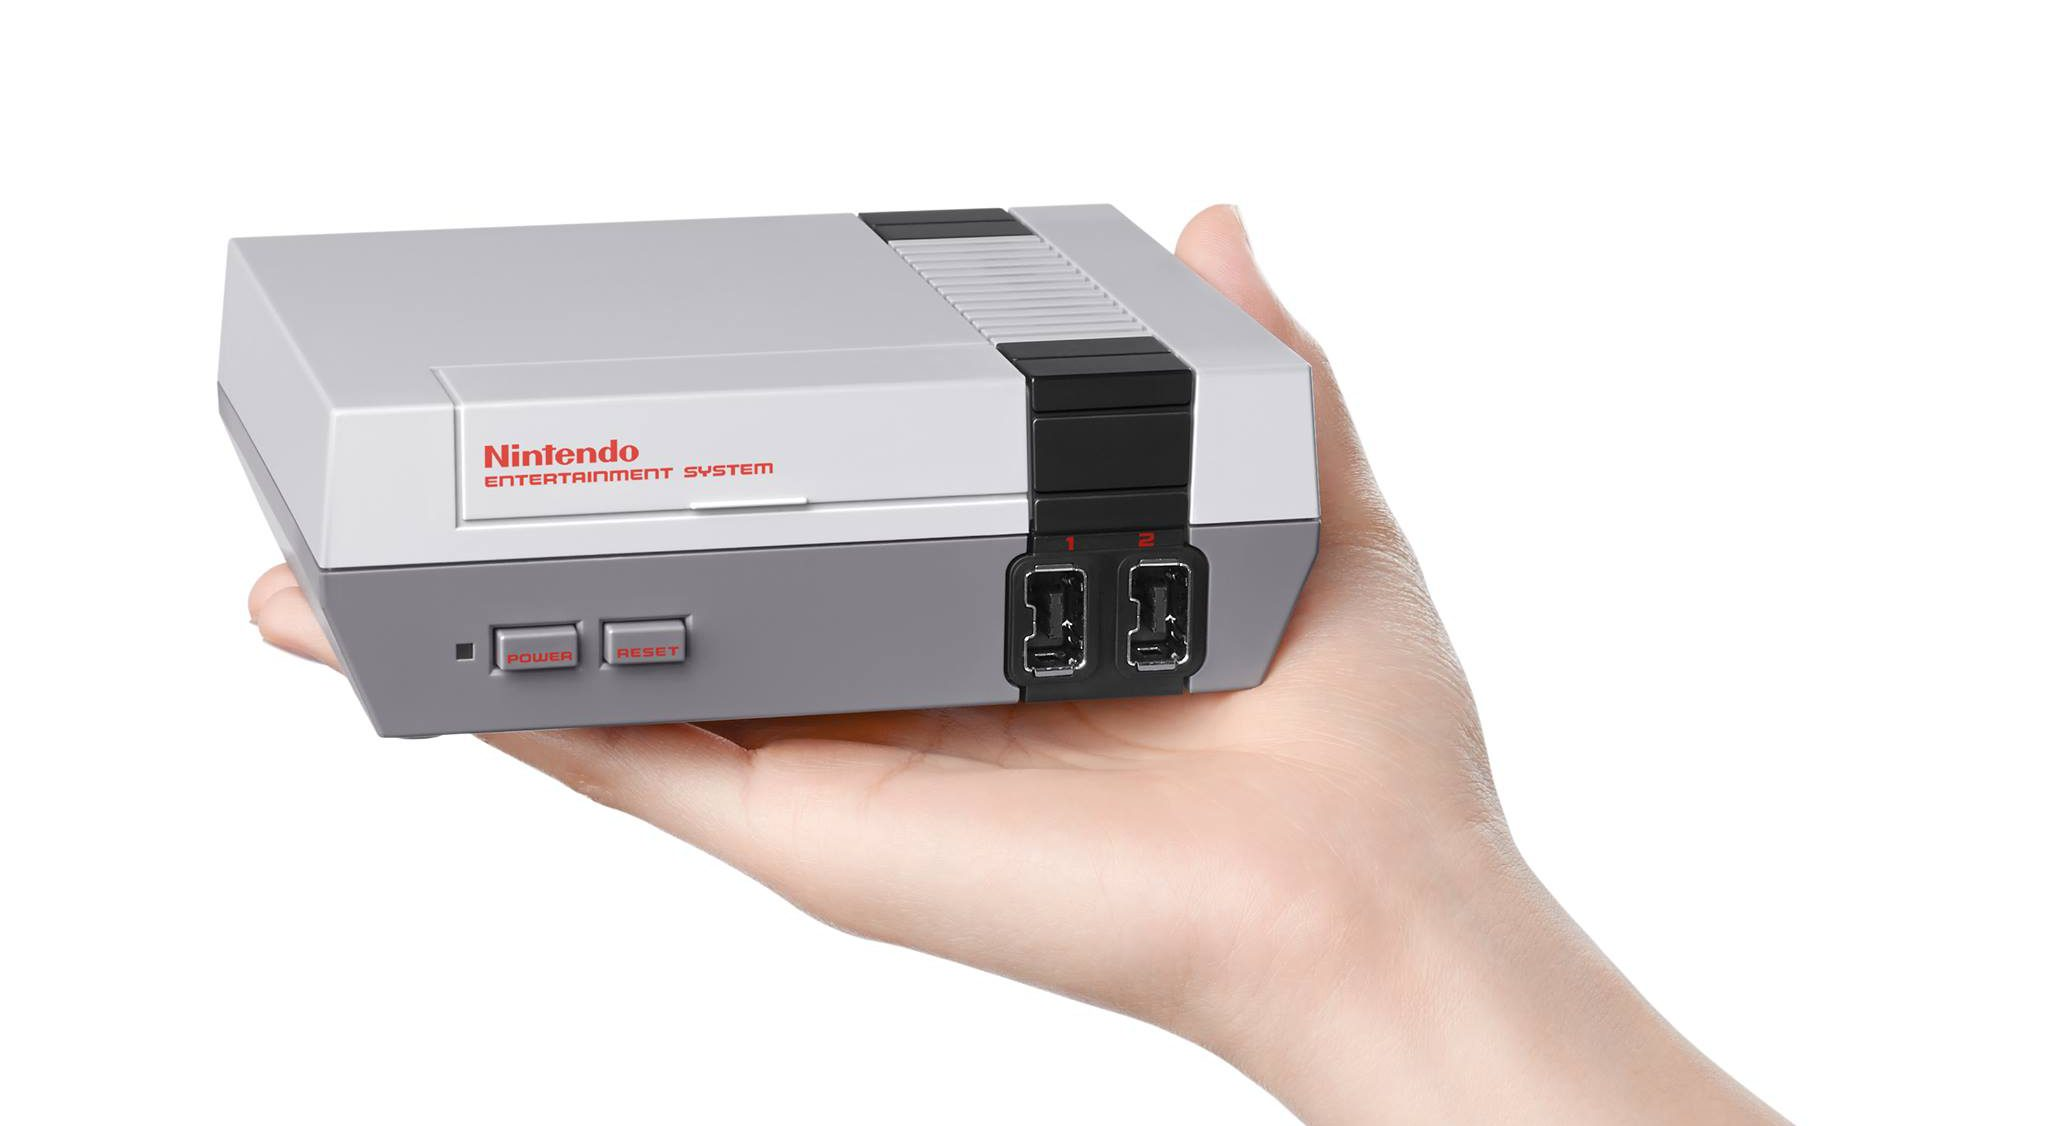 Nintendo Bringing Back NES Classic Next Year, Increasing Shipments Of Super NES Console